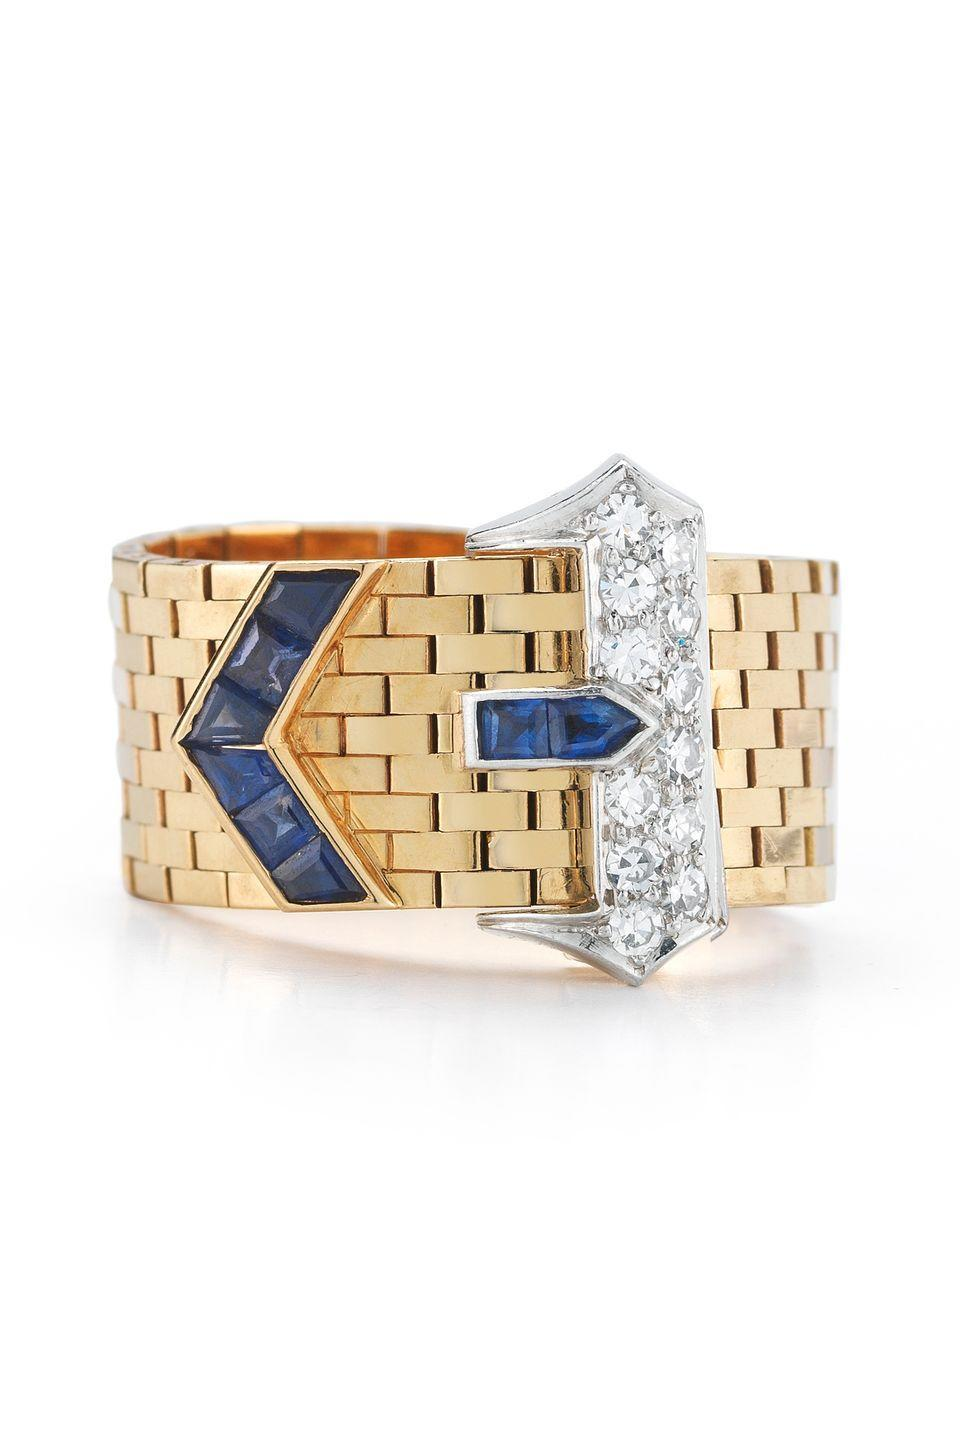 "<p><em><strong>McTeigue & McClelland </strong>Diamond and Blue Sapphire Ring in 18 Karat Mesh With Platinum Buckle, circa 1945-1950, price upon request, <a href=""http://www.mc2jewels.com/"" rel=""nofollow noopener"" target=""_blank"" data-ylk=""slk:mc2jewels.com"" class=""link rapid-noclick-resp"">mc2jewels.com</a></em></p><p><a class=""link rapid-noclick-resp"" href=""http://www.mc2jewels.com/"" rel=""nofollow noopener"" target=""_blank"" data-ylk=""slk:SHOP"">SHOP</a></p>"